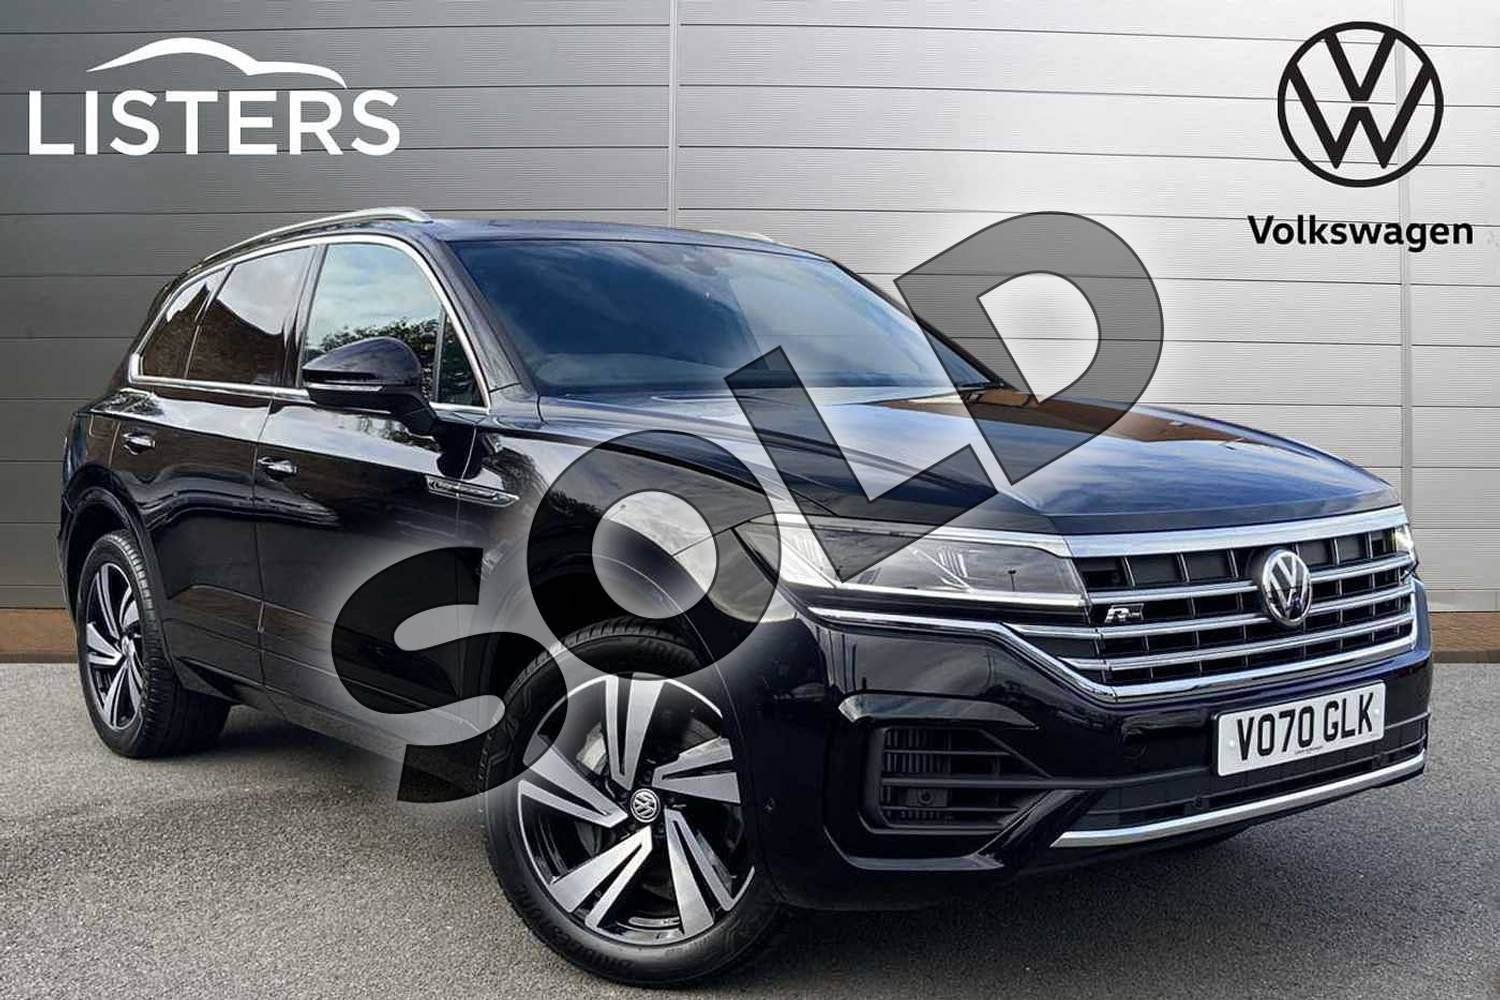 2020 Volkswagen Touareg Estate 3.0 V6 TSI 4Motion R-Line Tech 5dr Tip Auto in Deep black at Listers Volkswagen Stratford-upon-Avon